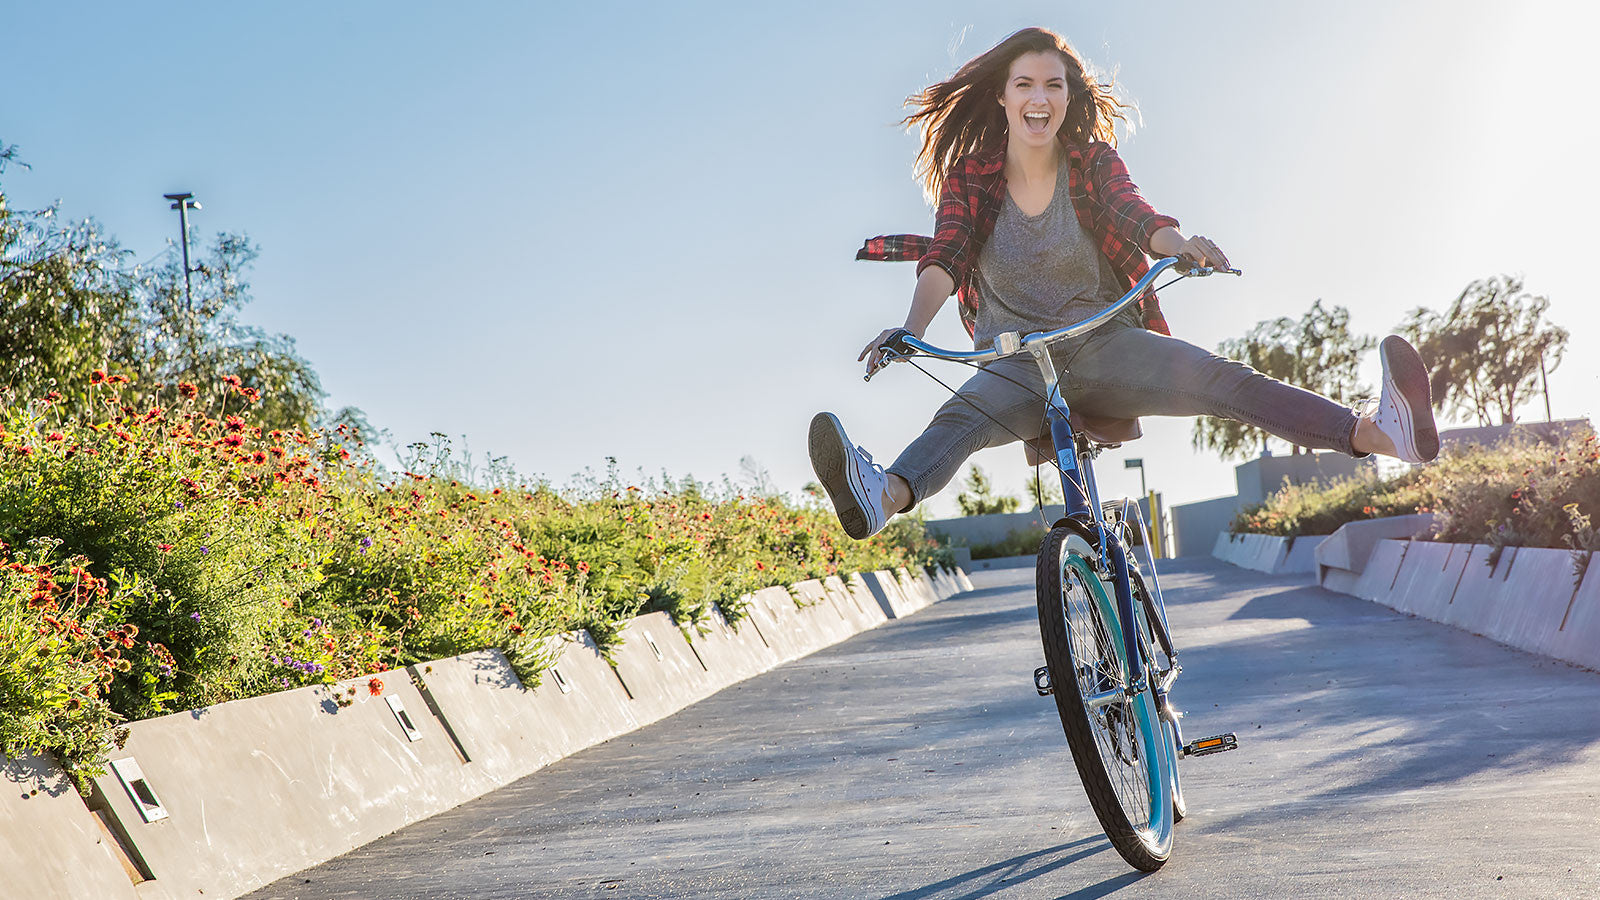 Cruiser Bikes for Women Provide a Fun & Rewarding Fitness Activity